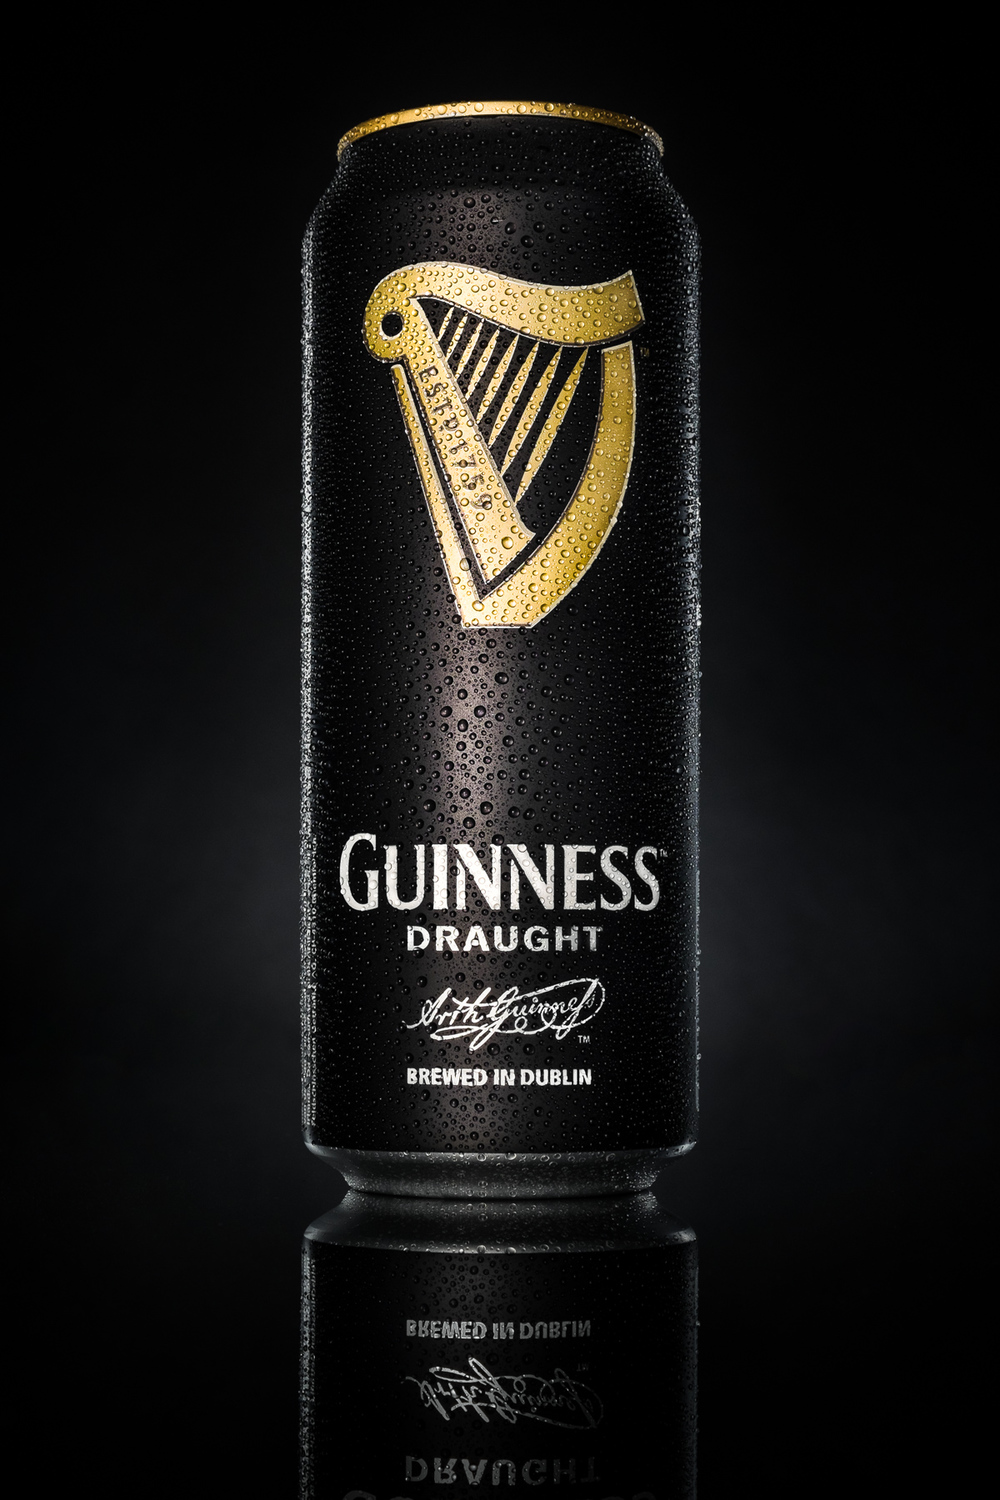 Guinness draught beer can